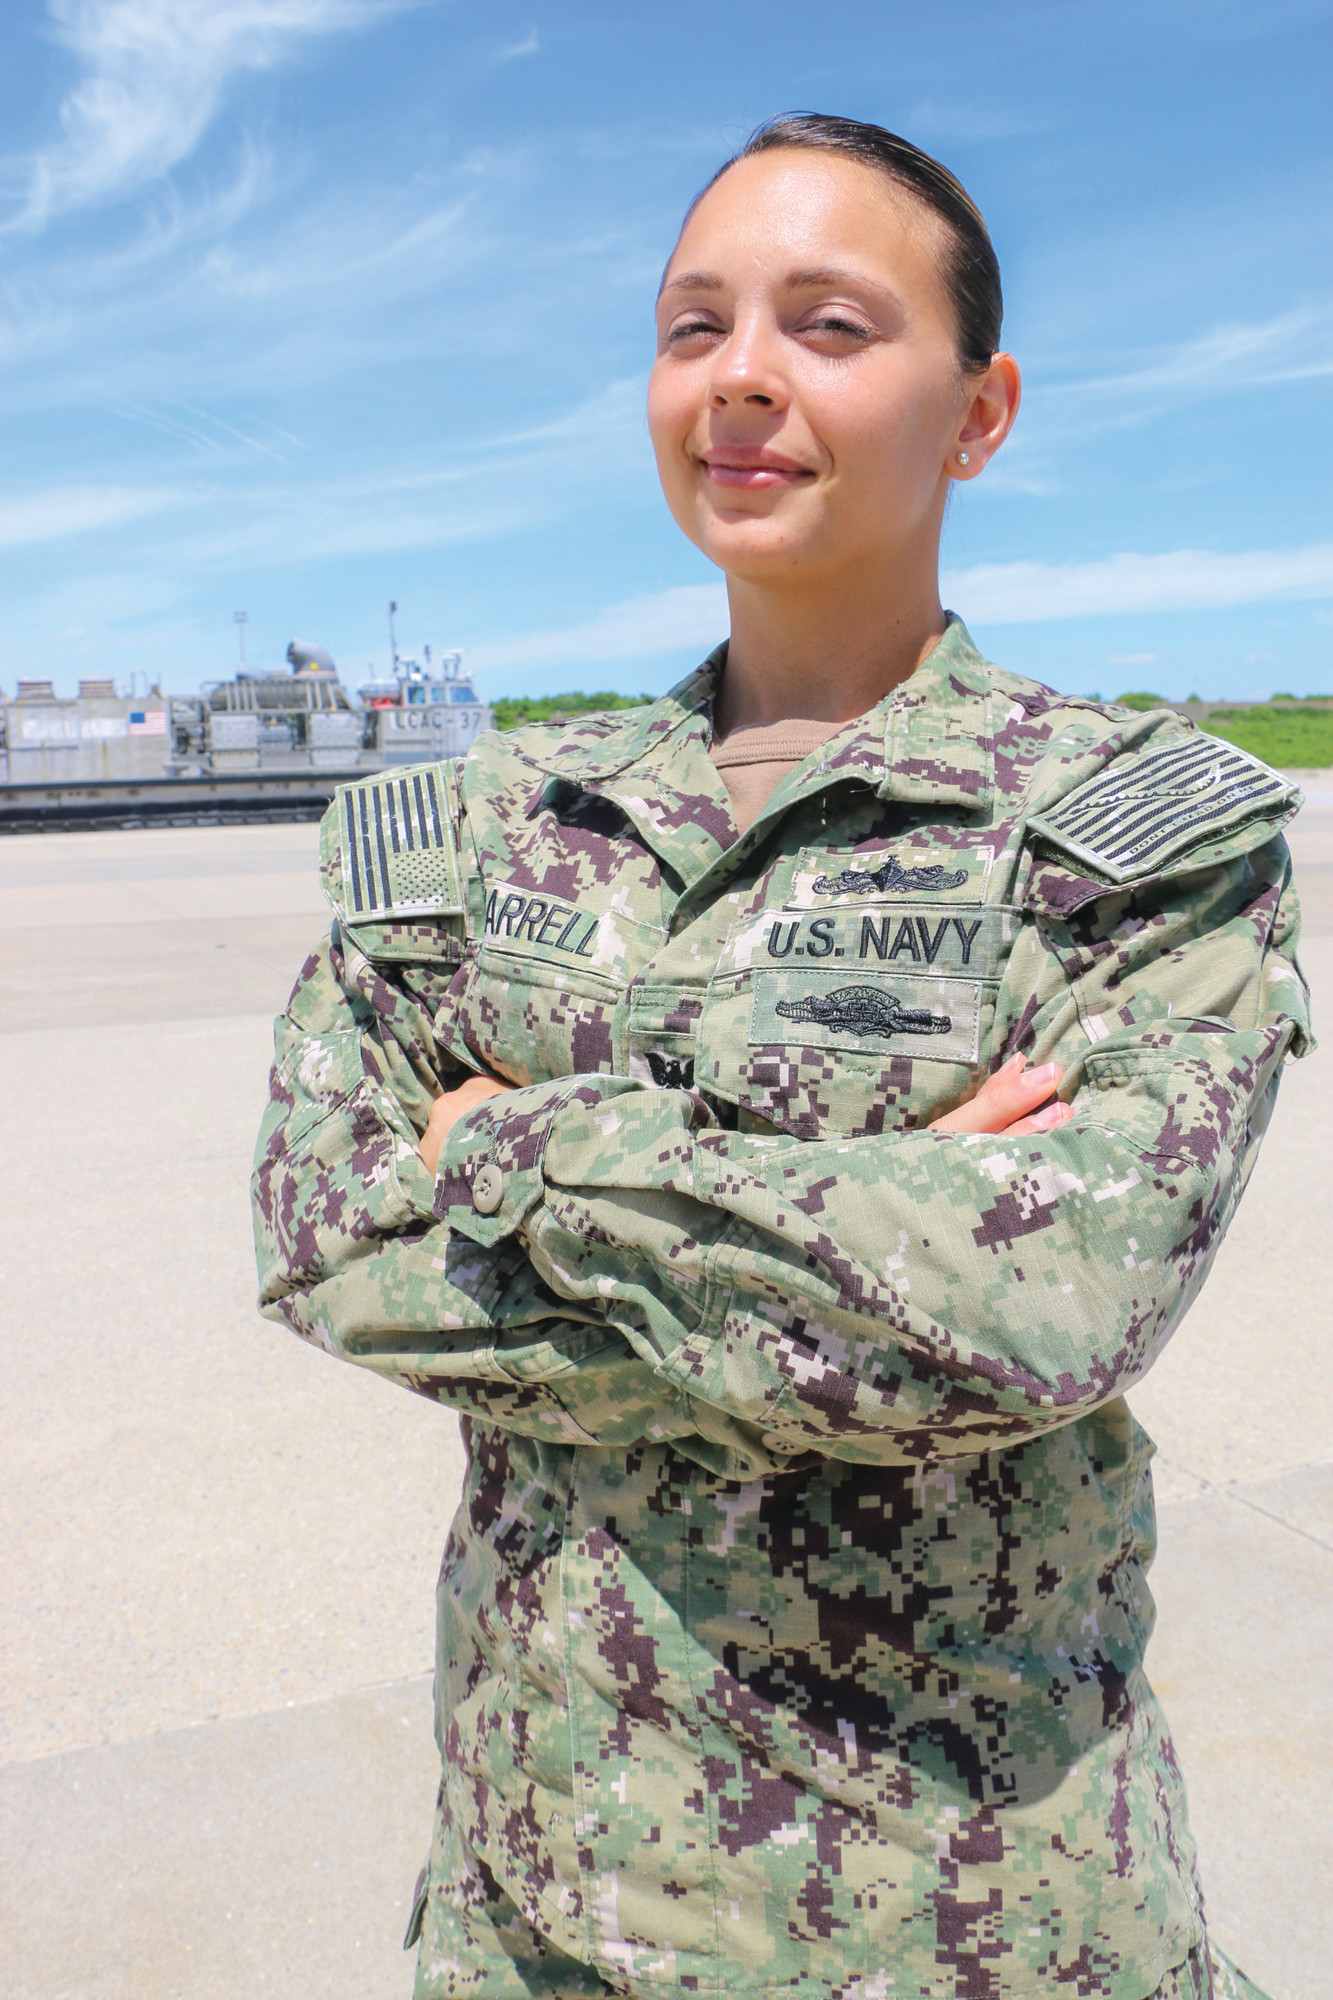 Petty Officer 2nd Class Tabitha Harrell works as an operations specialist with Assault Craft Unit FOUR (ACU 4) out of Virginia Beach, Virginia.